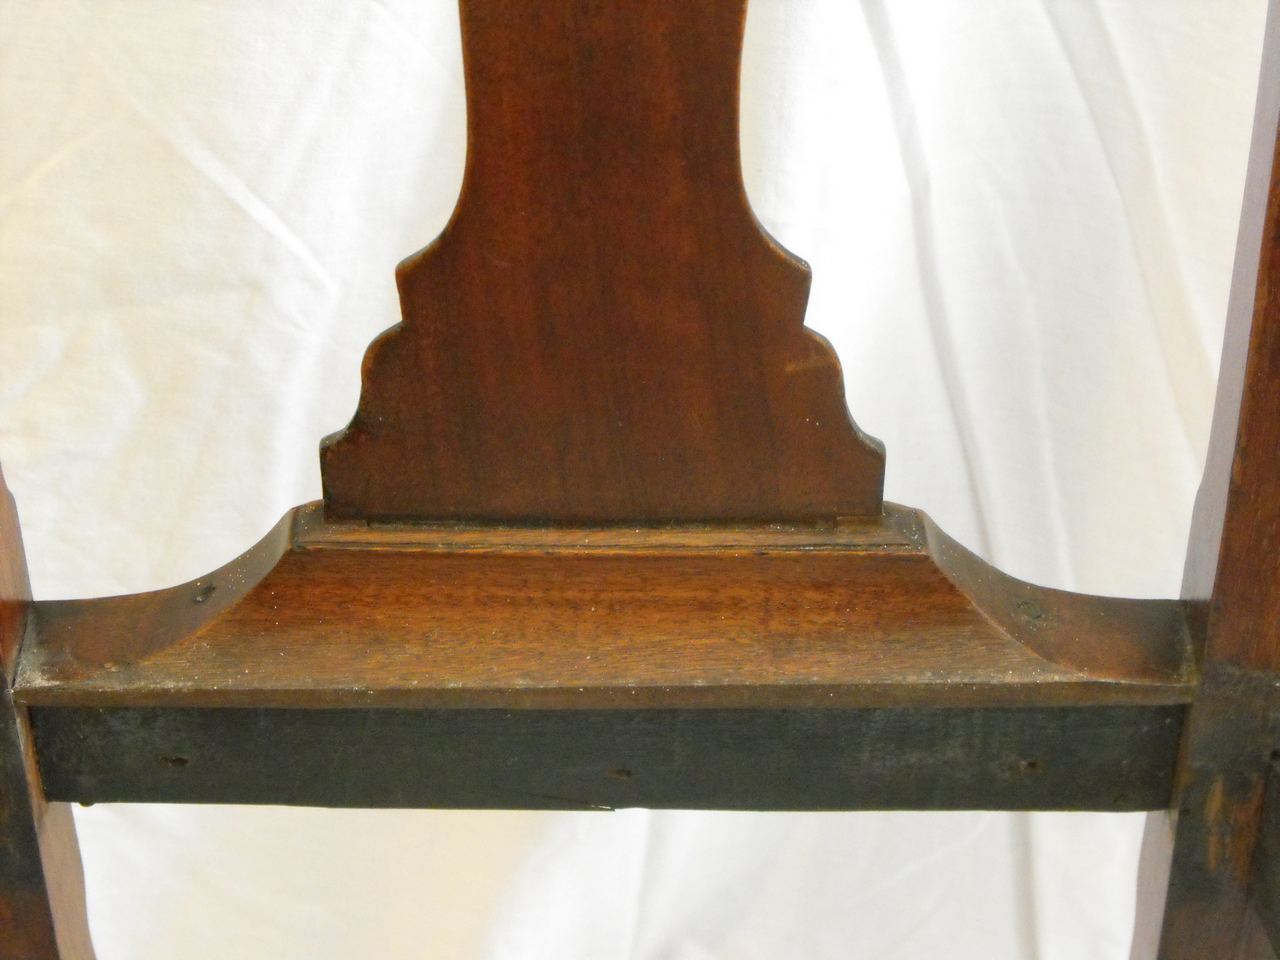 Virginia Turned Chair Massachusetts Queen Anne Side Chair; Boston,  Massachusetts. Circa 1740 - 1760. - Antiques And Hand-made Reproduction 18th And 19th Century Furniture